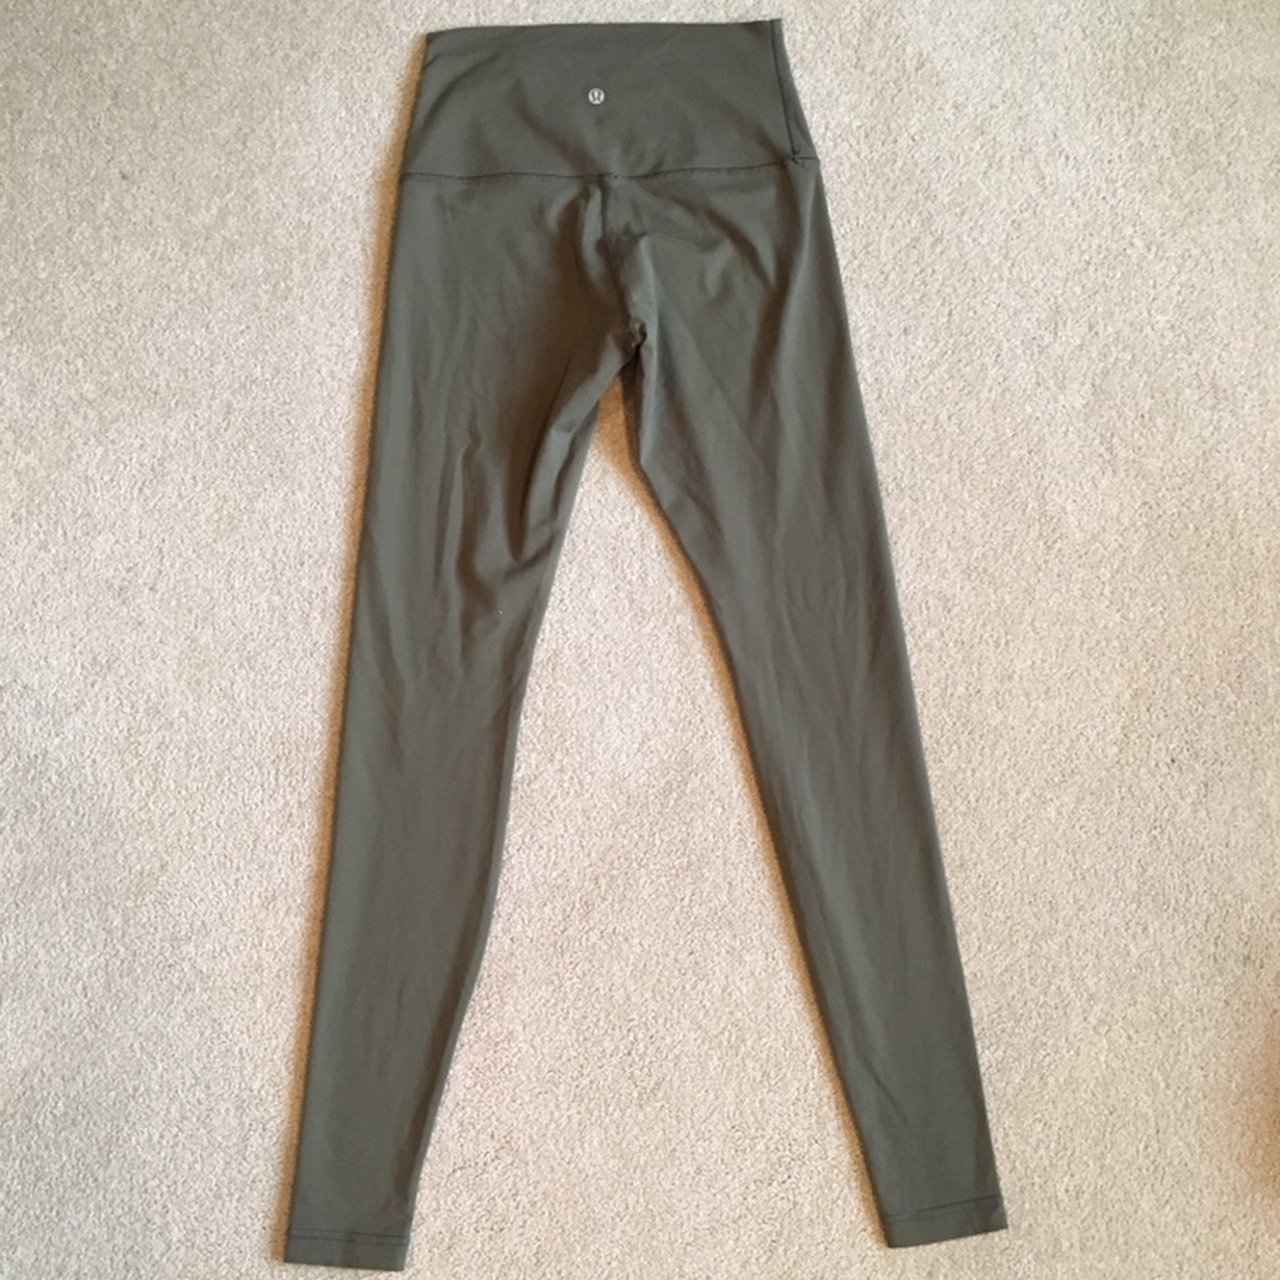 0a0c8e5778 @bawong. 2 months ago. Torrance, United States. Lululemon Leggings. Tag was ripped  off but fits ...